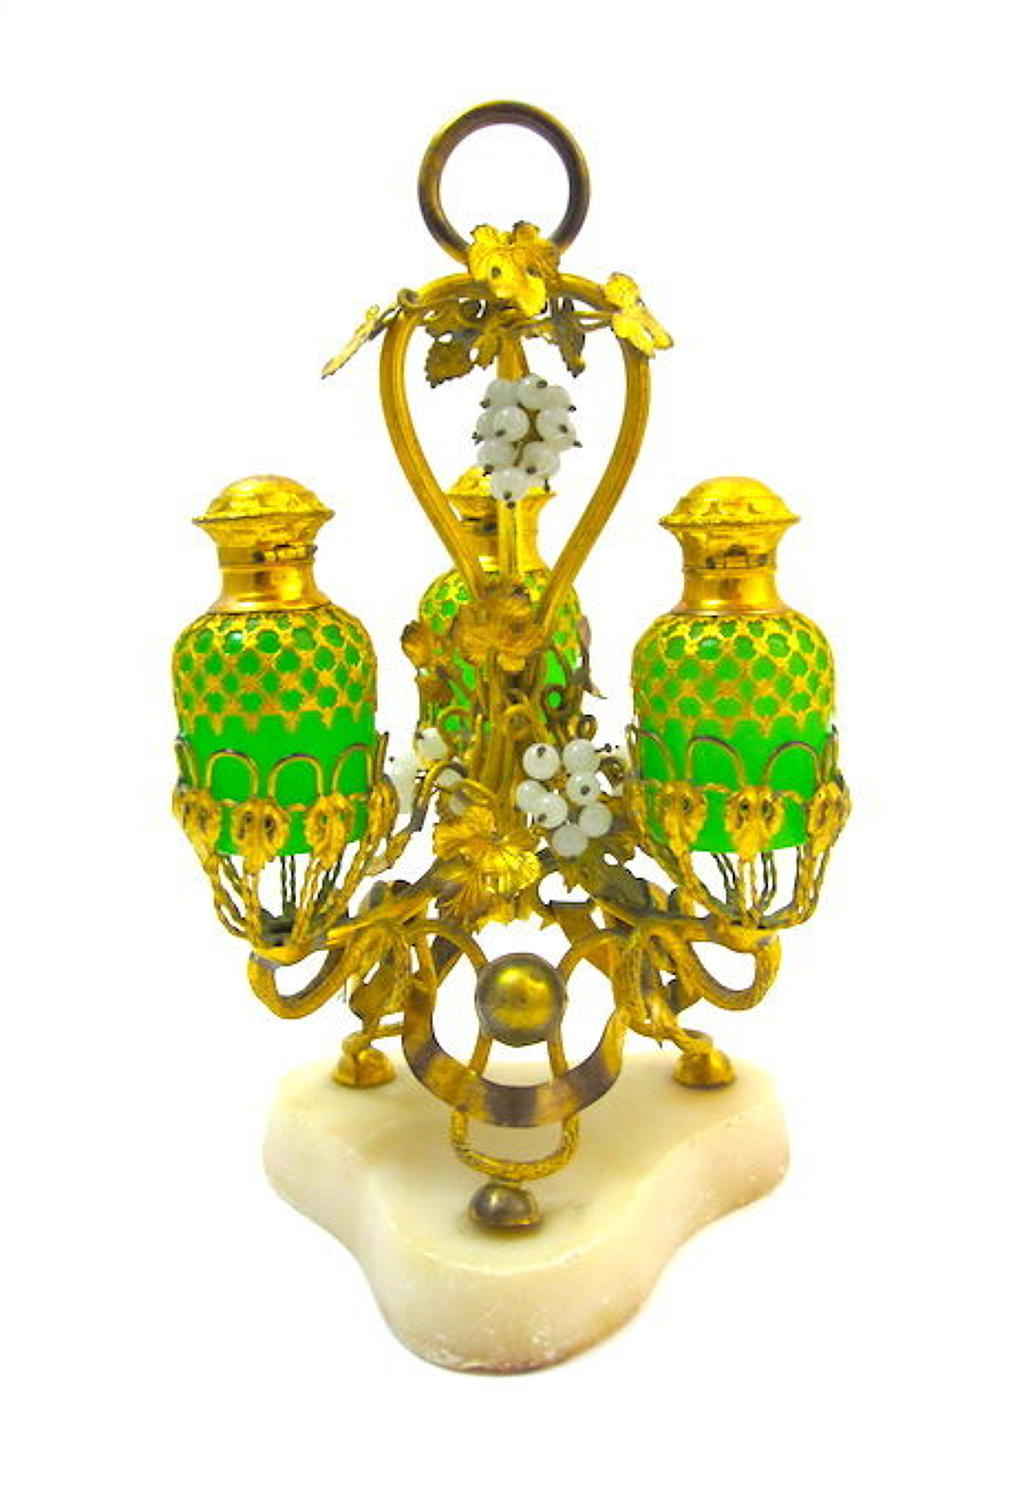 Antique Palais Royal Perfume Set in